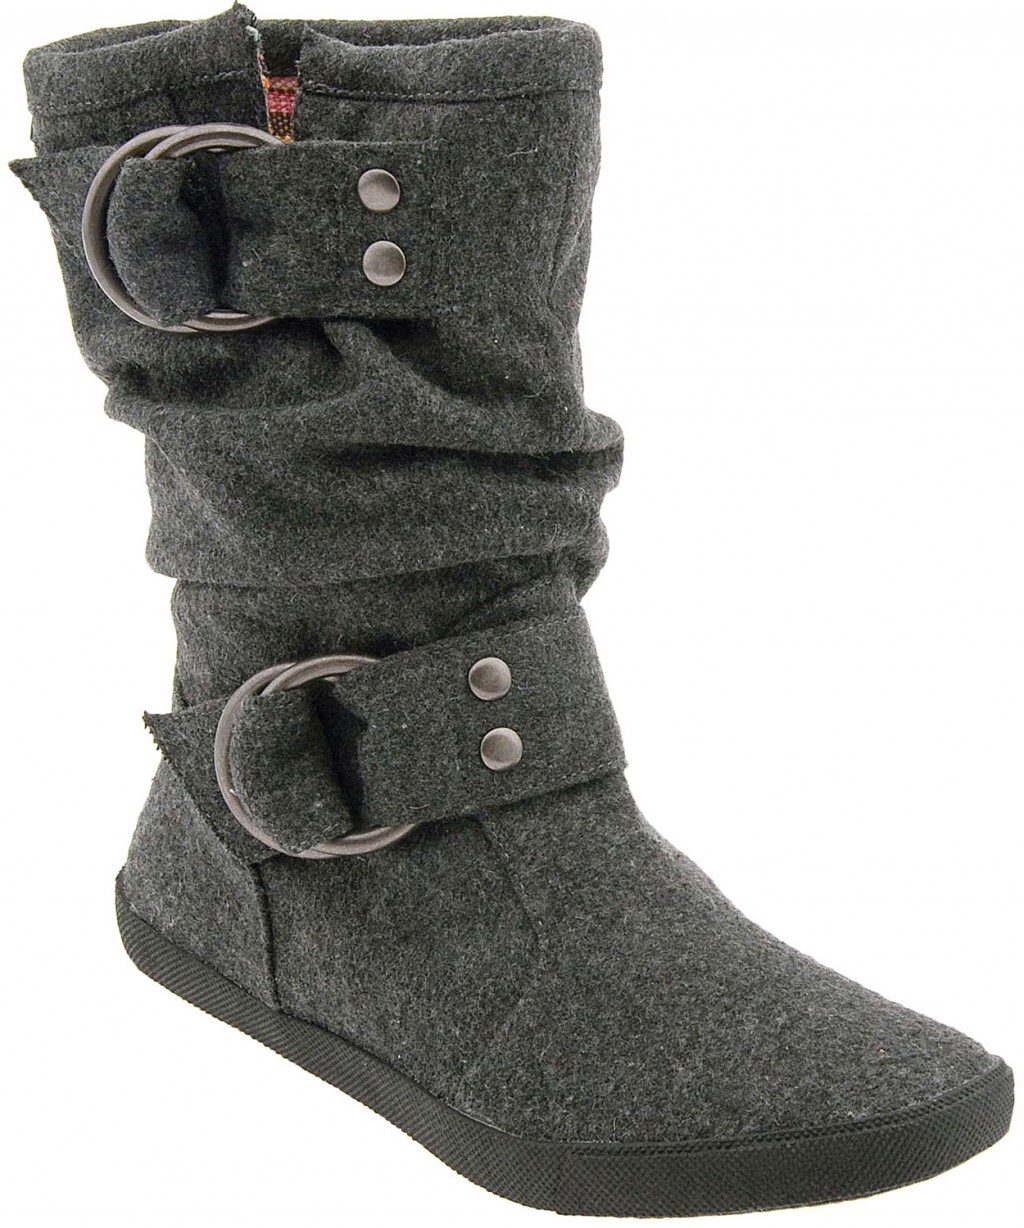 Charming Winter BootsProduct Picture in Shoes